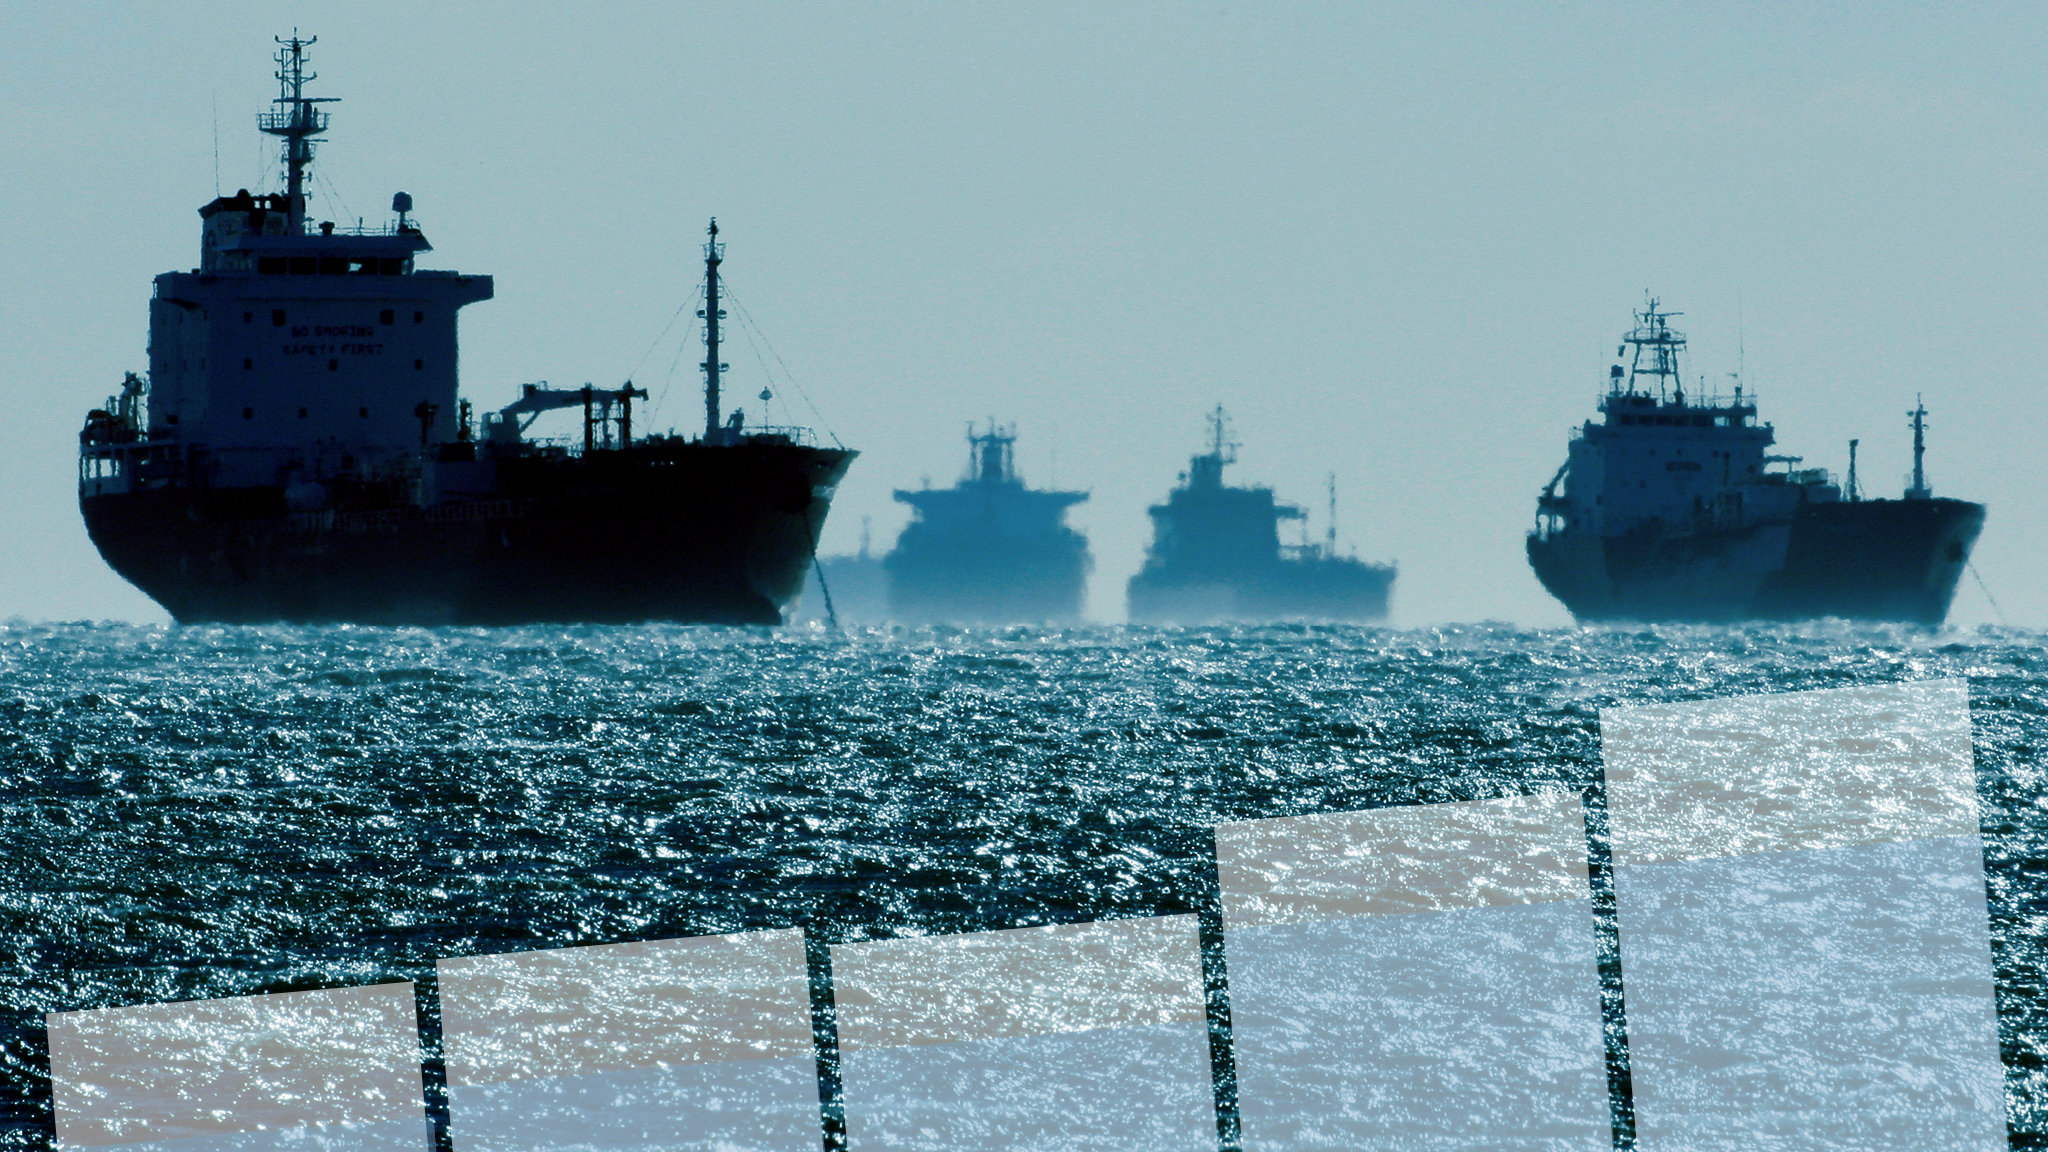 Five things to watch as Brent crude oil nears $70